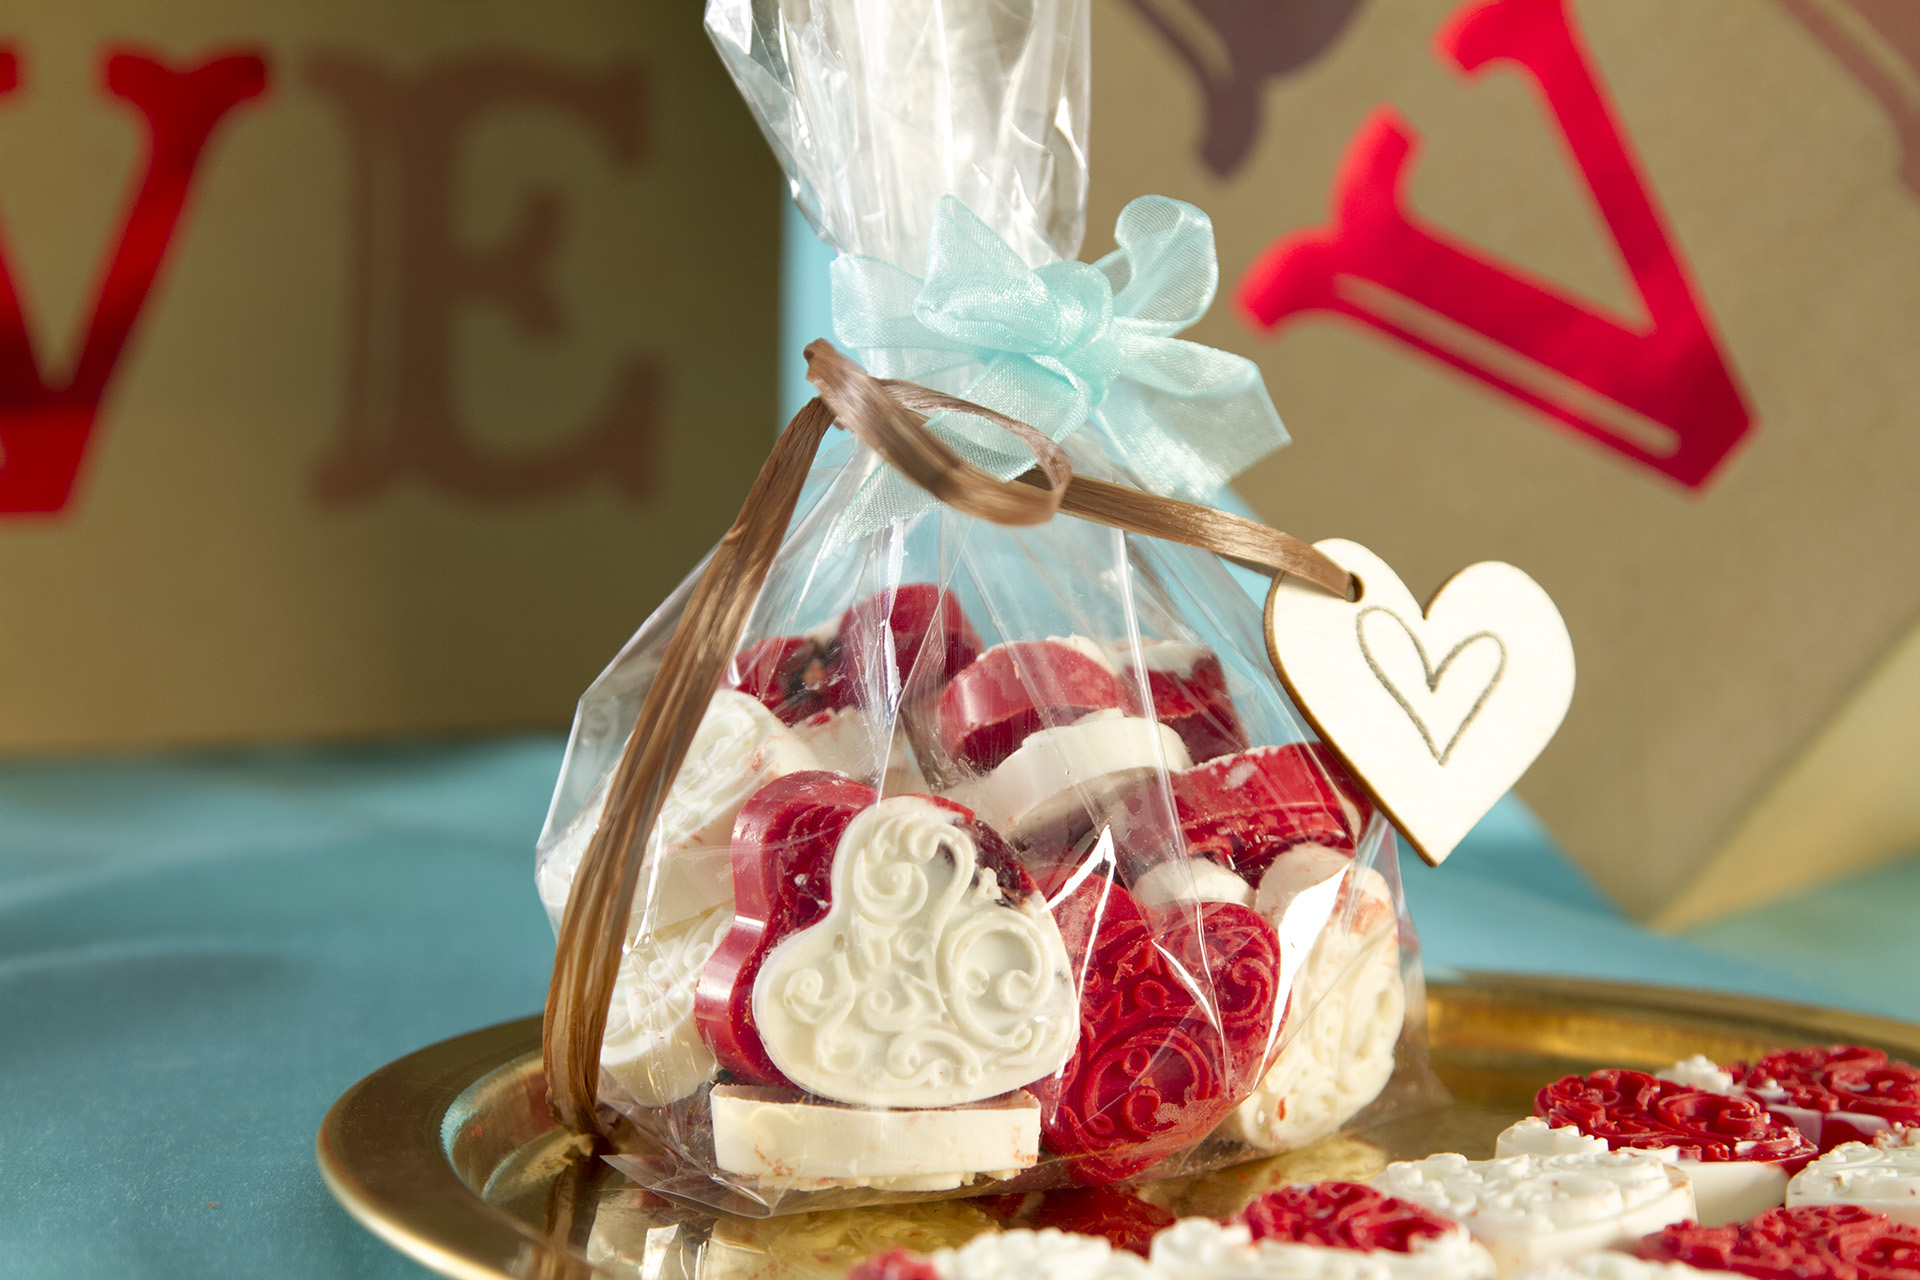 The easiest way to win a heart is to create one! With just two ingredients and any candy mold you desire, these Candy Hearts are an adorable DIY gift.